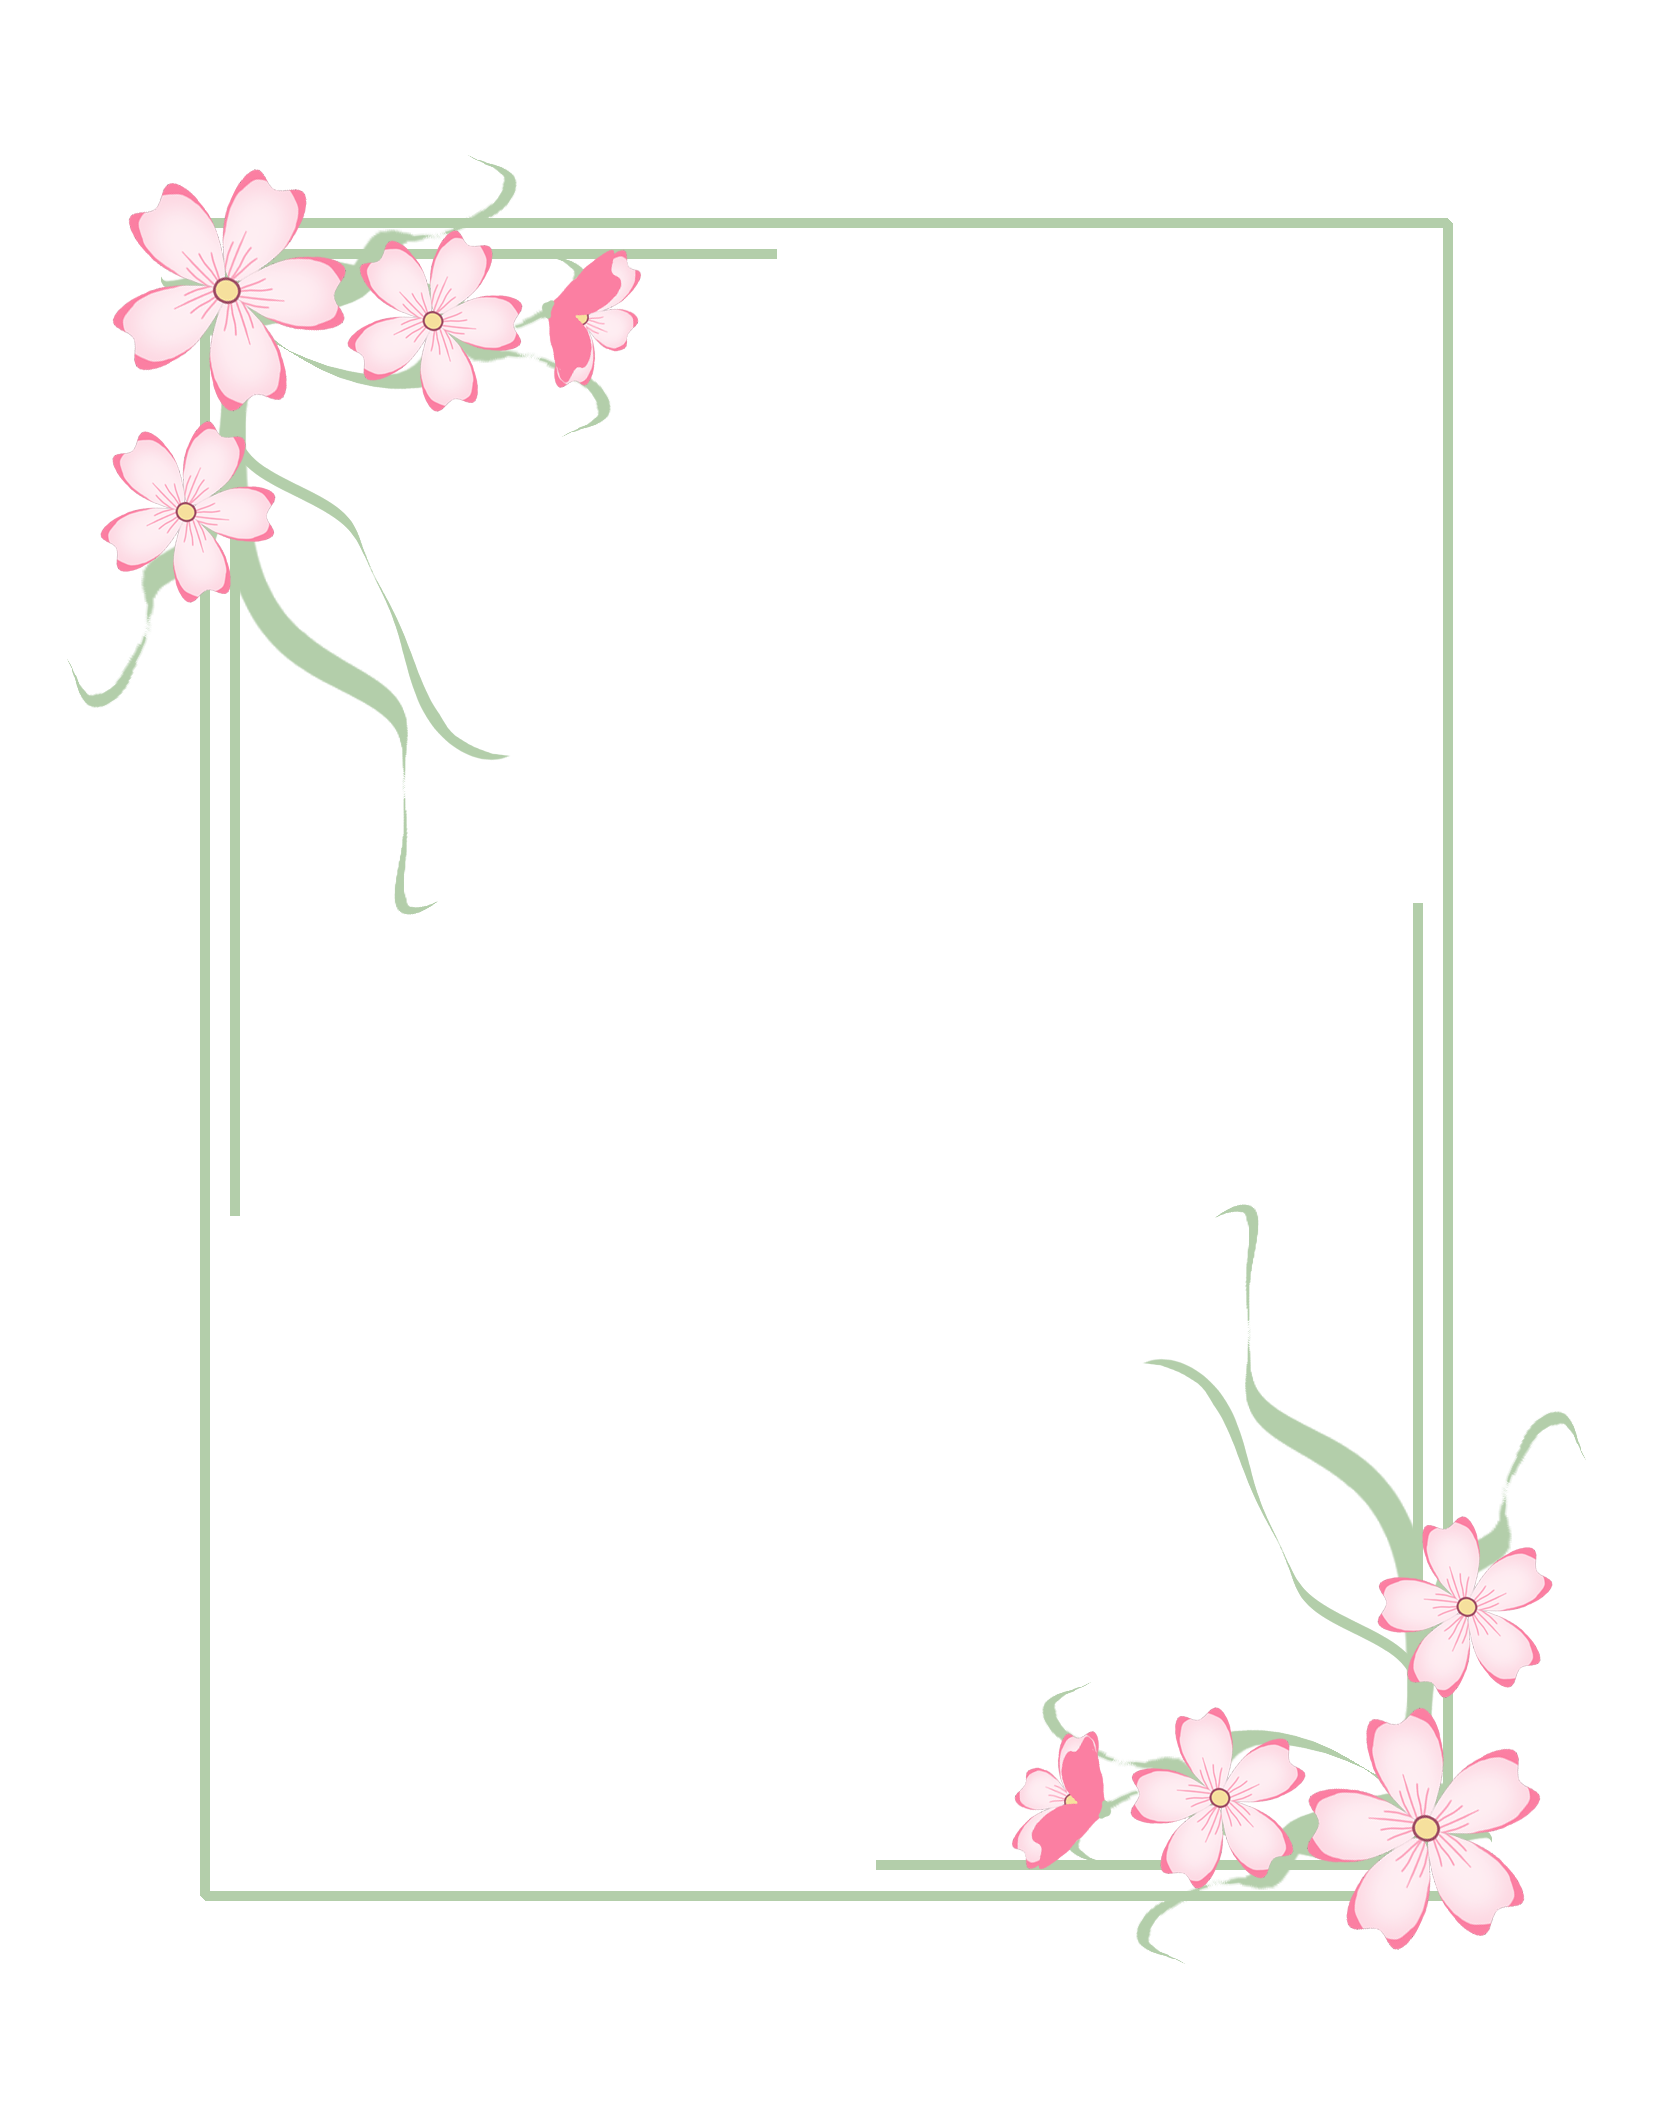 green frame pink flowers